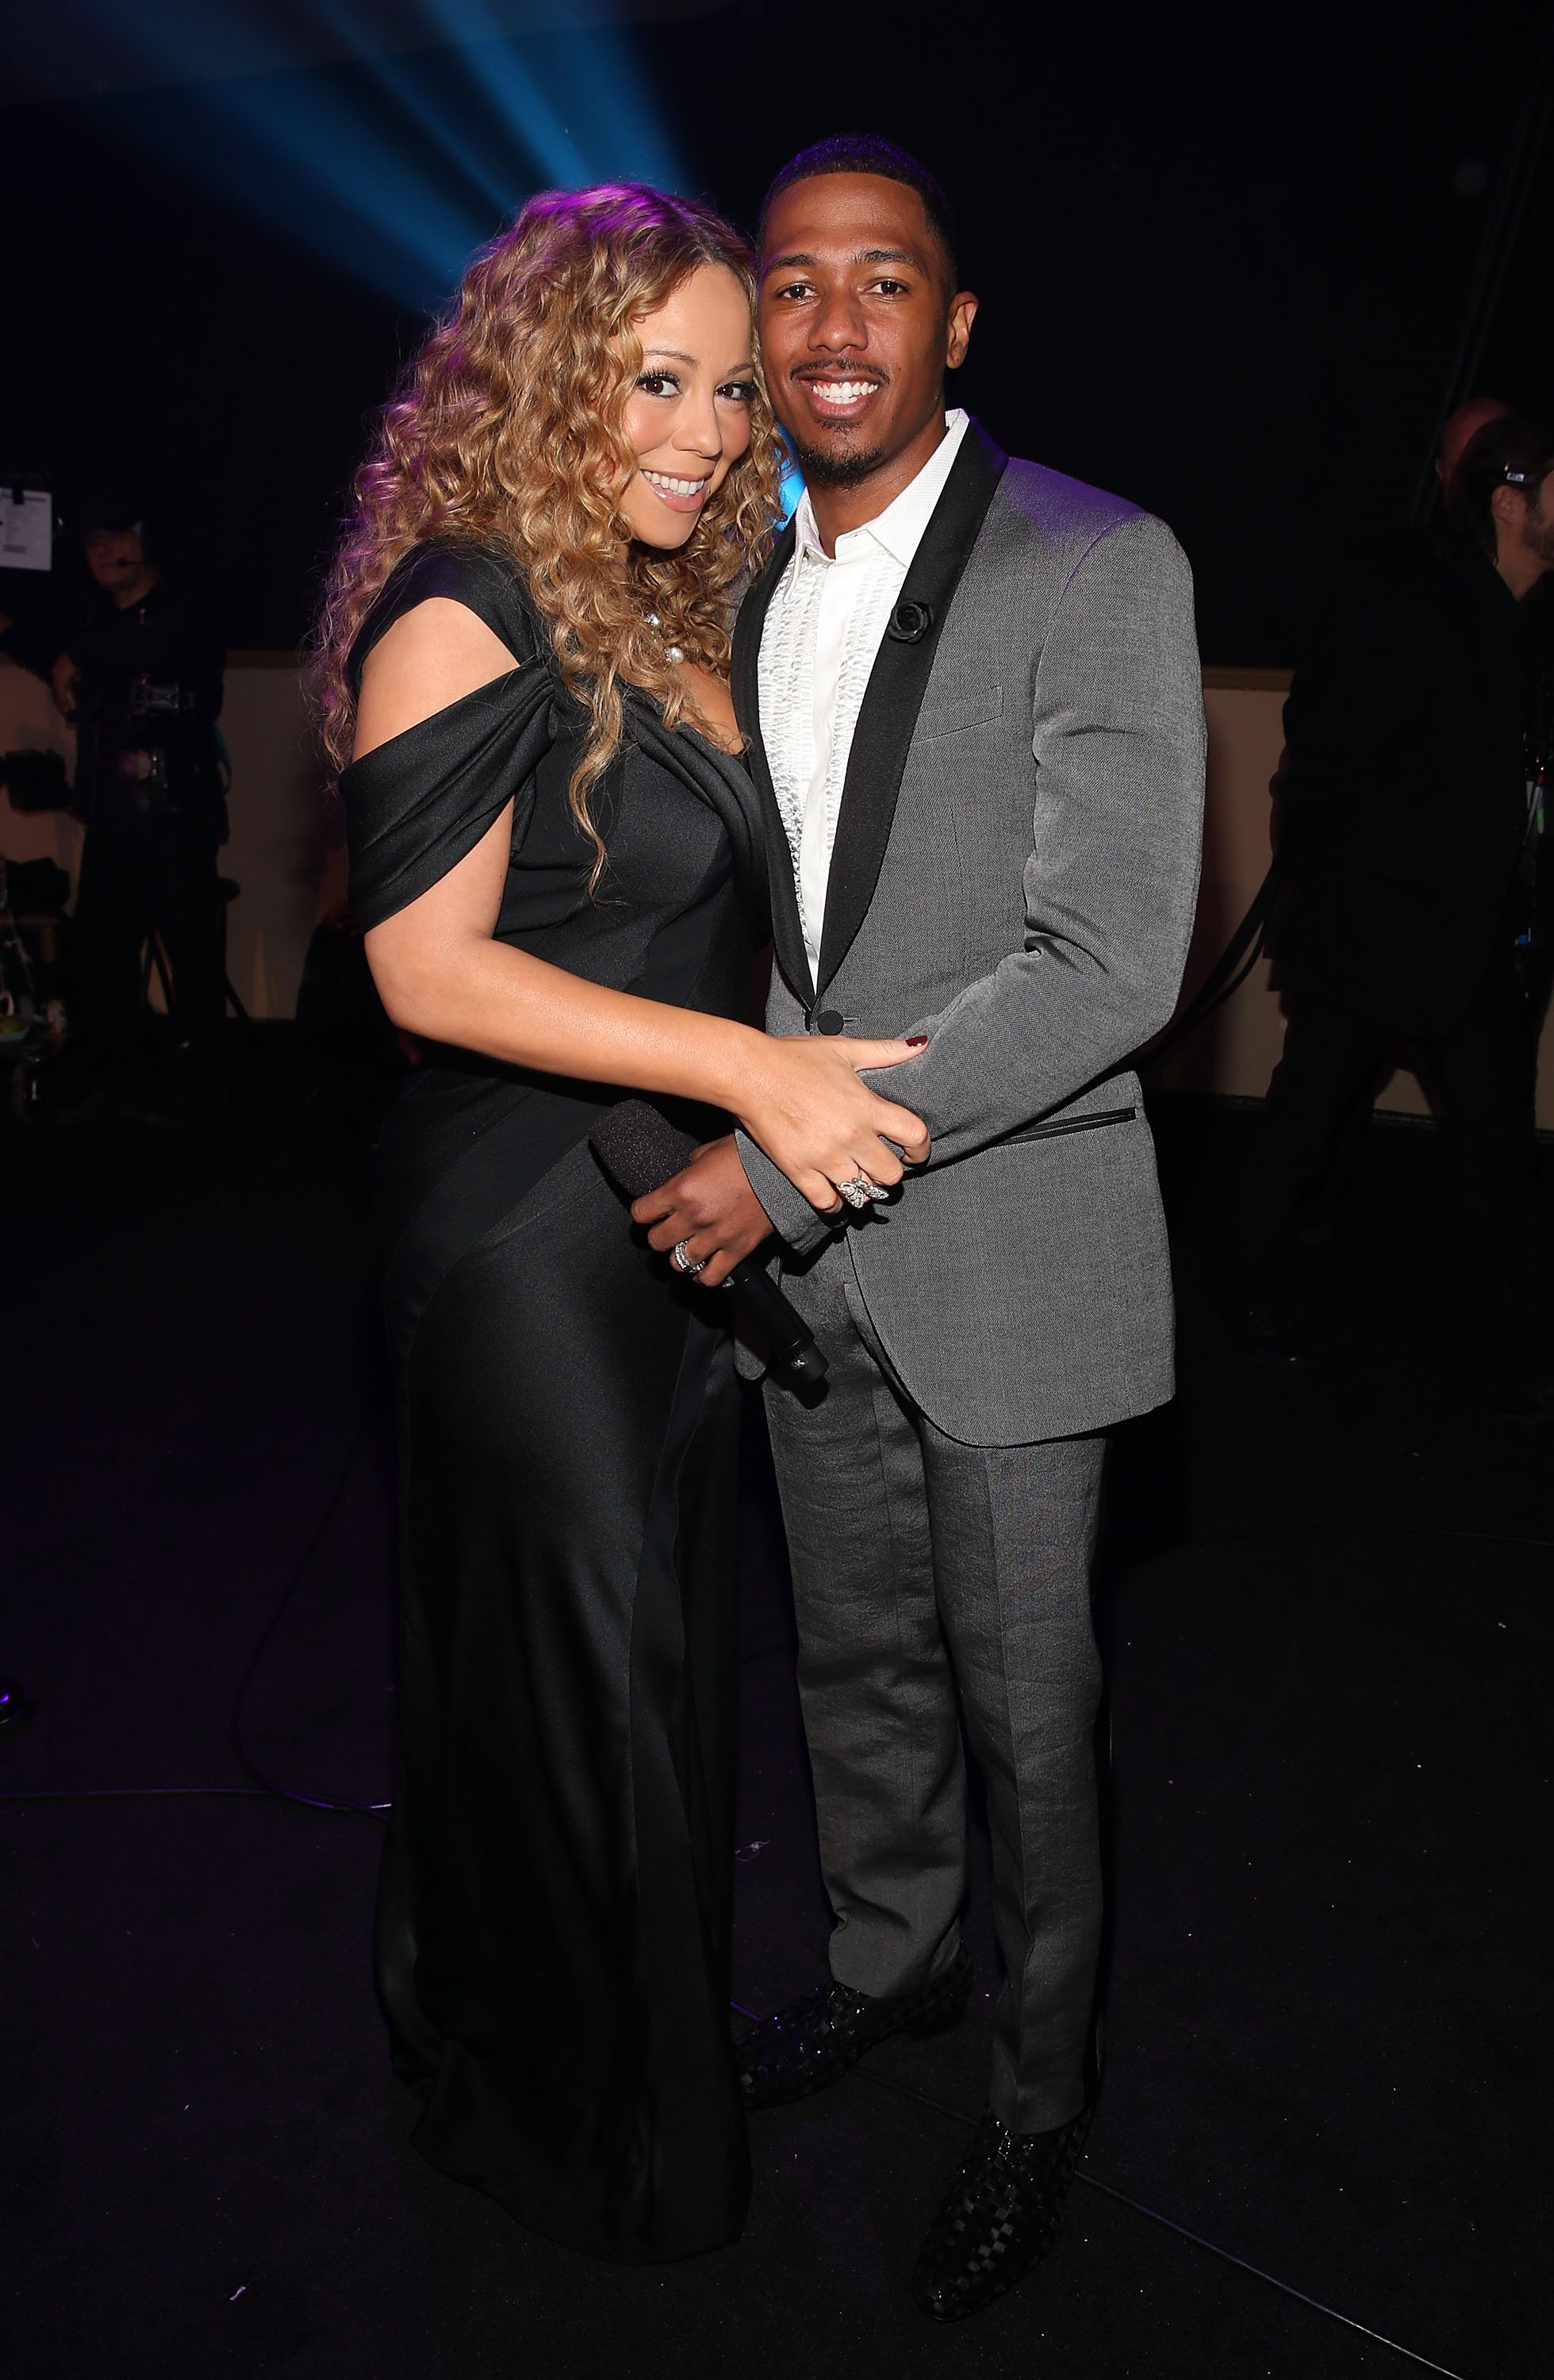 Mariah Carey and TeenNick Chairman and HALO Awards host Nick Cannon attend Nickelodeon's 2012 TeenNick HALO Awards at Hollywood Palladium on November 17, 2012, in Hollywood, California. | Source: Getty Images.